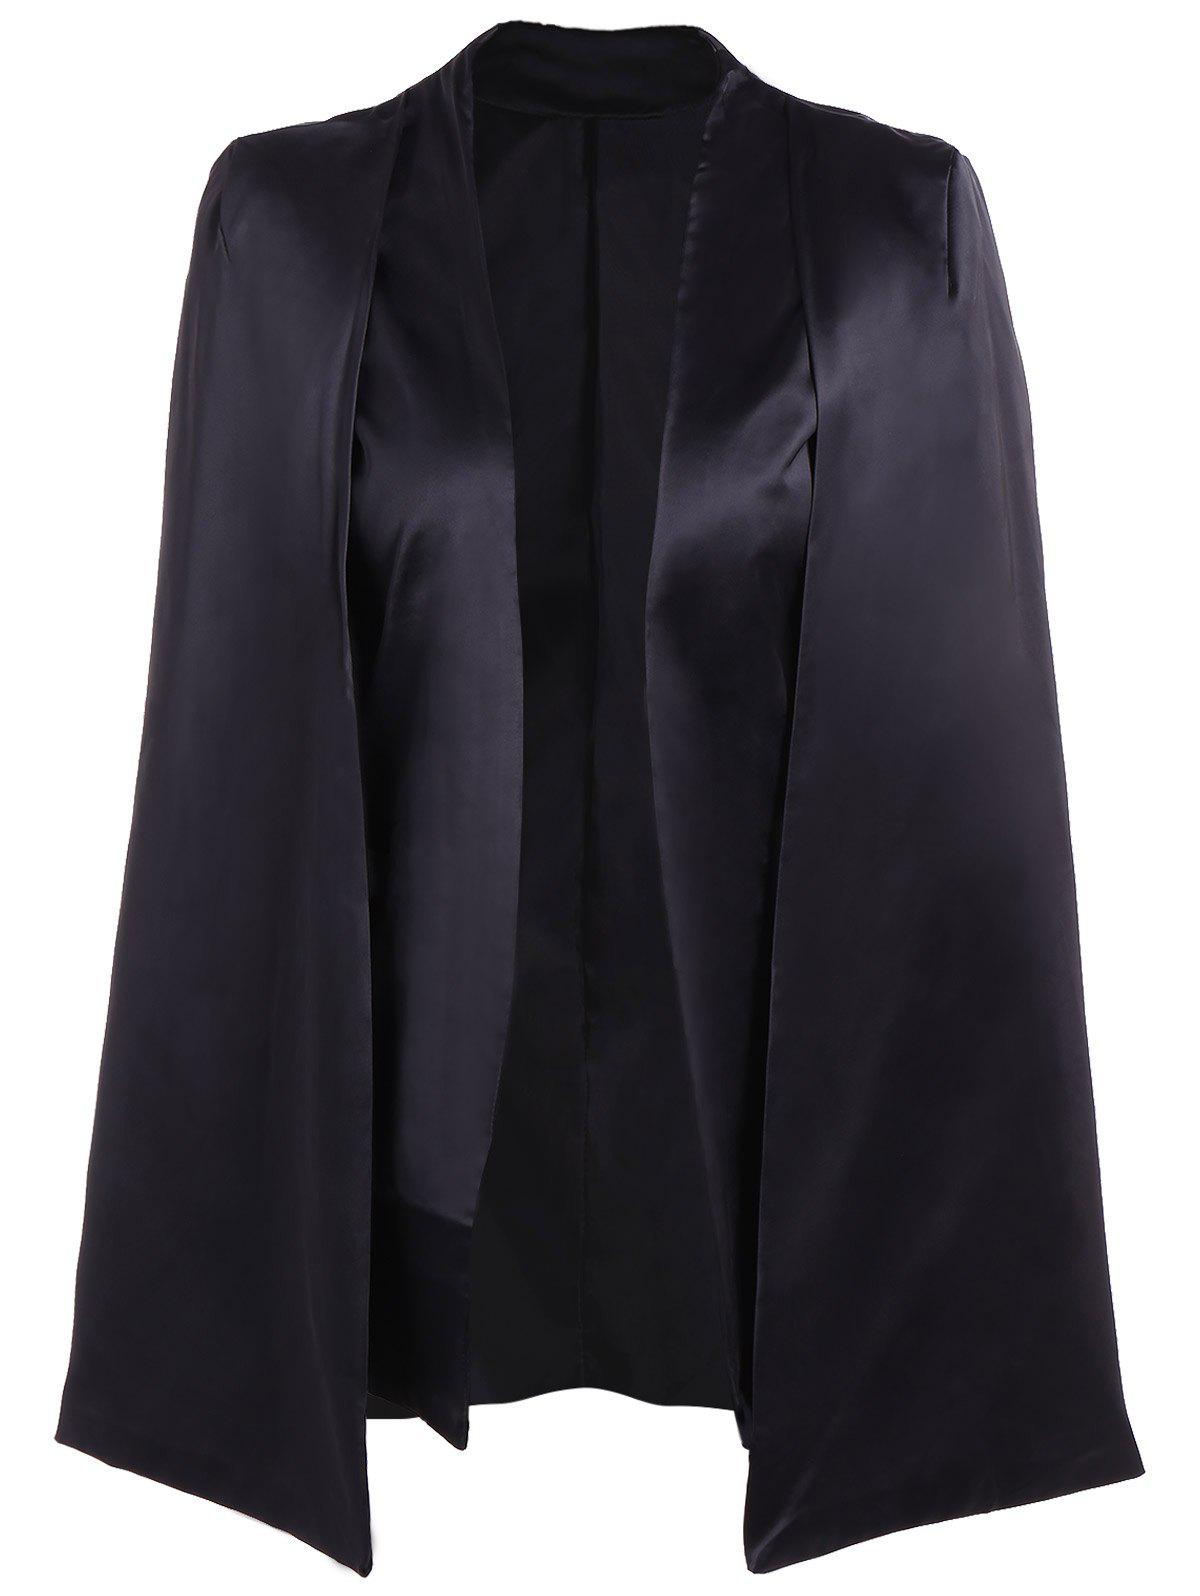 Formal Collarless Jacket Cape Blazer - BLACK L